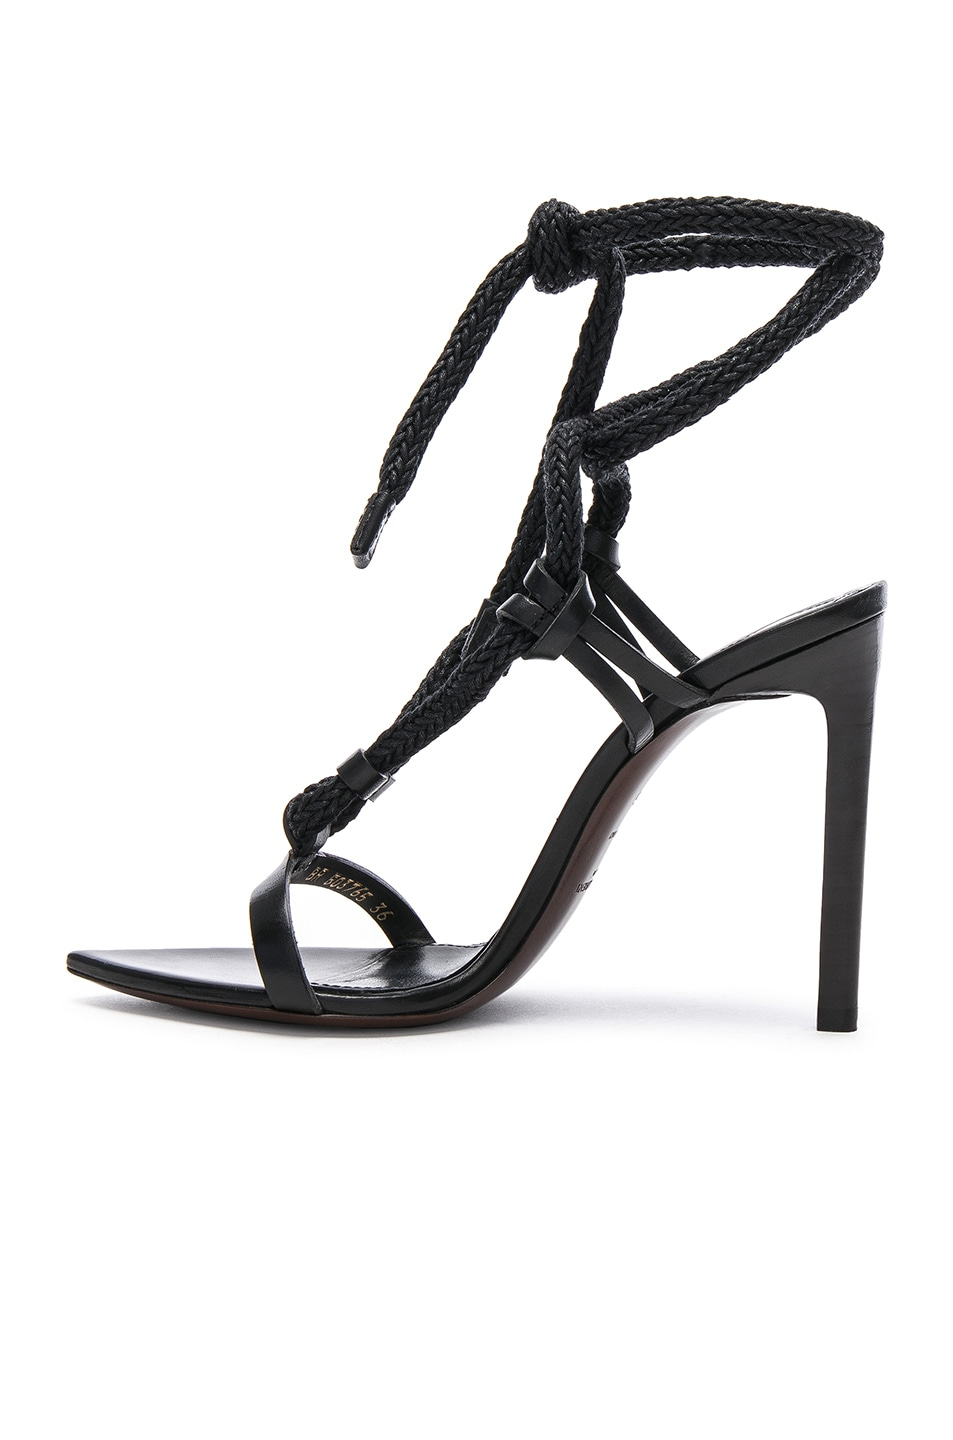 Image 5 of Saint Laurent Majorelle Leather Strappy Sandals in Black